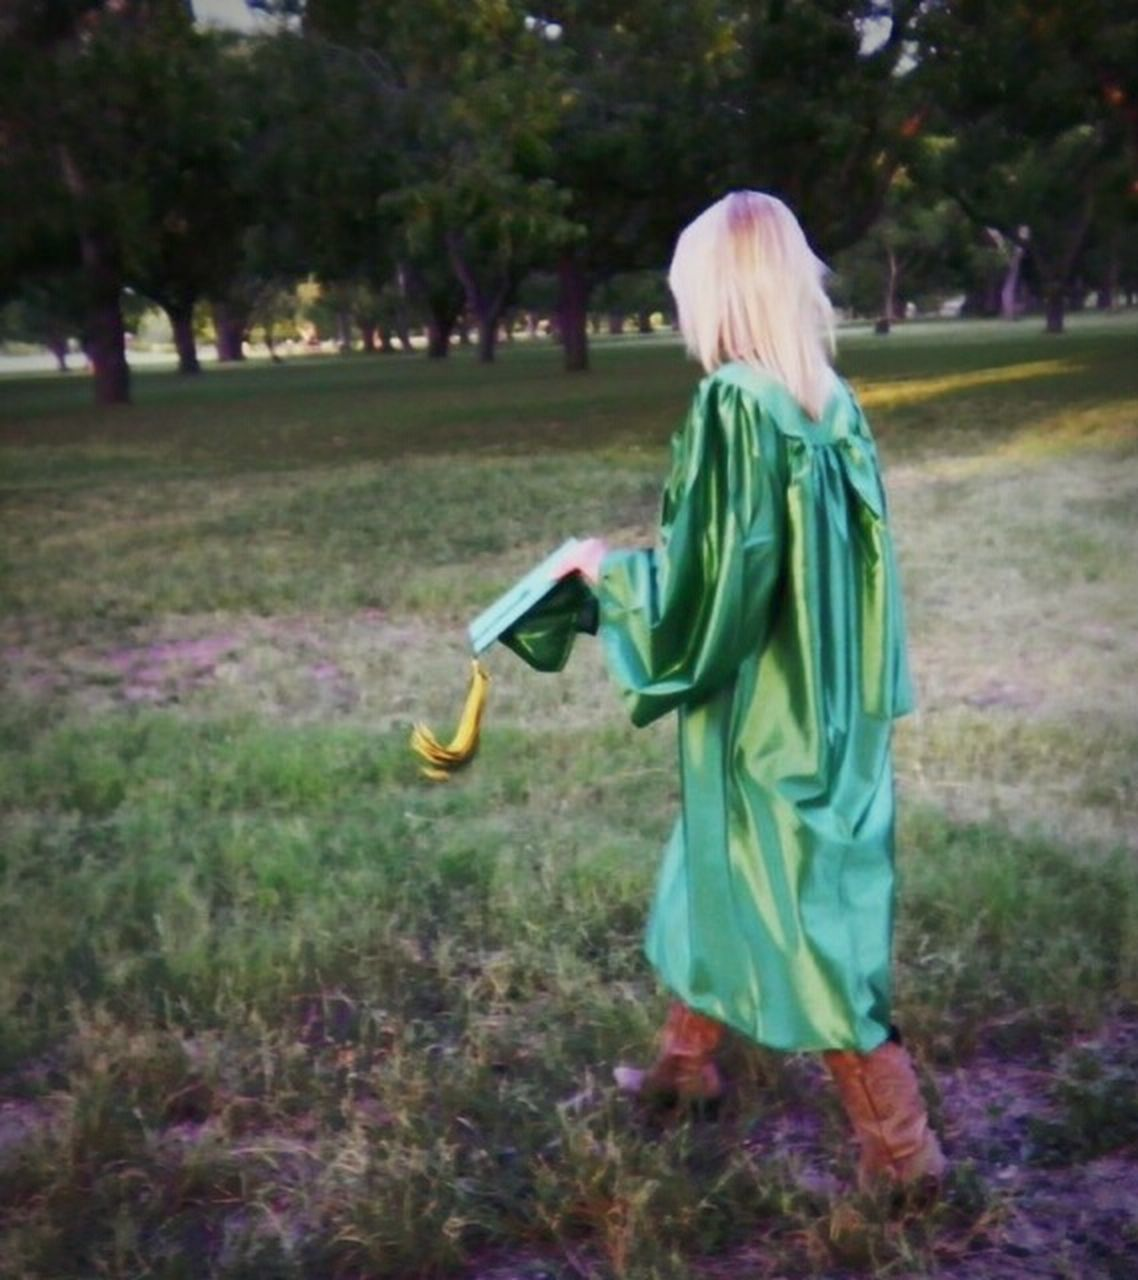 childhood, one person, rear view, blond hair, holding, girls, full length, child, leisure activity, real people, elementary age, children only, grass, outdoors, lifestyles, day, nature, tree, people, adult